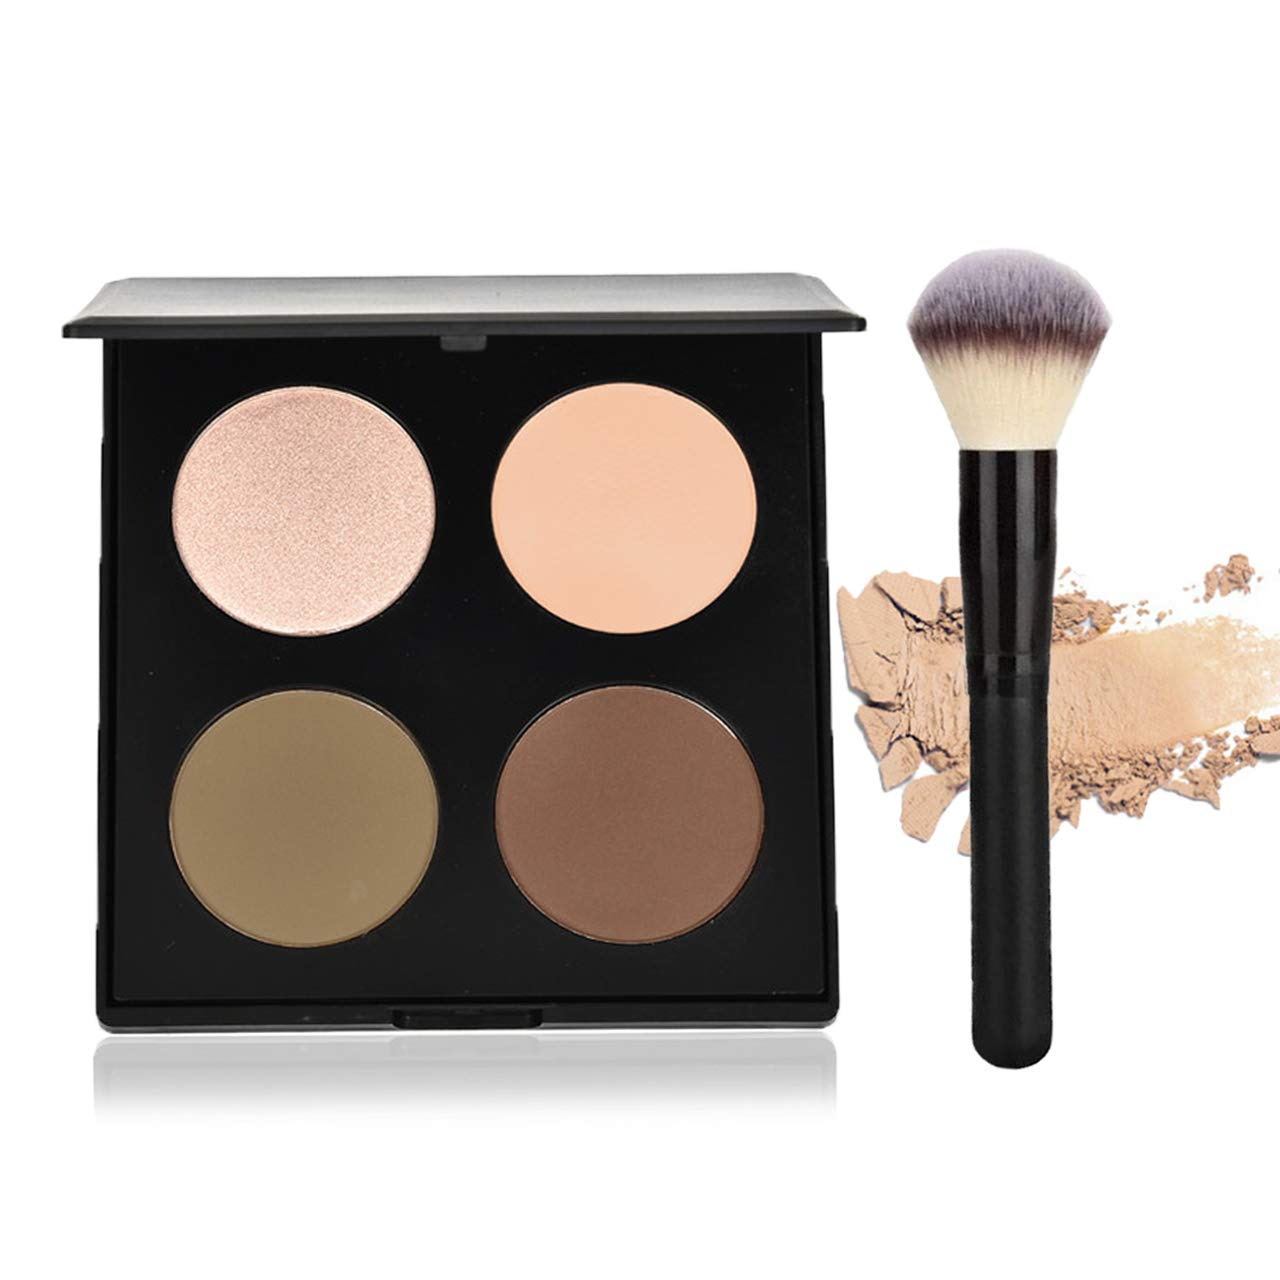 CCbeauty Illuminator Face Highlighter Makeup Palette with Powder Brush Shimmer Powder Contour Palette Bronzers & Eyeshadow Kit, Dazzling Pearl